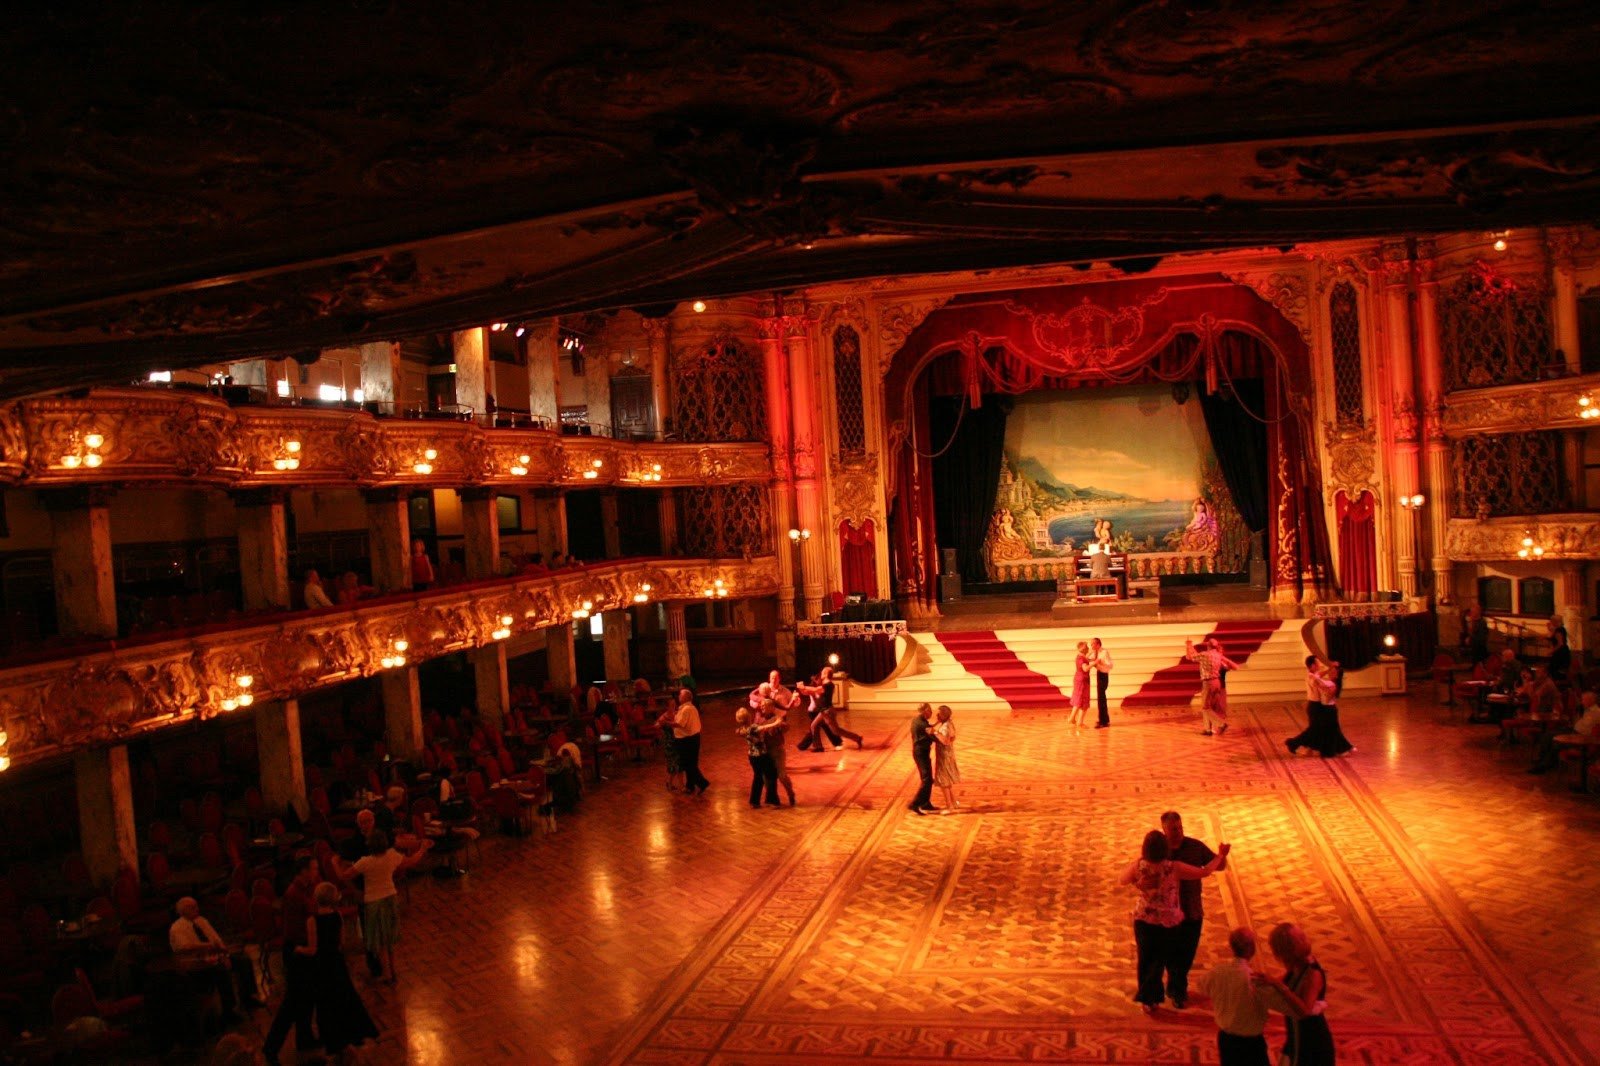 blackpool tower ballroom wallpapers - photo #42